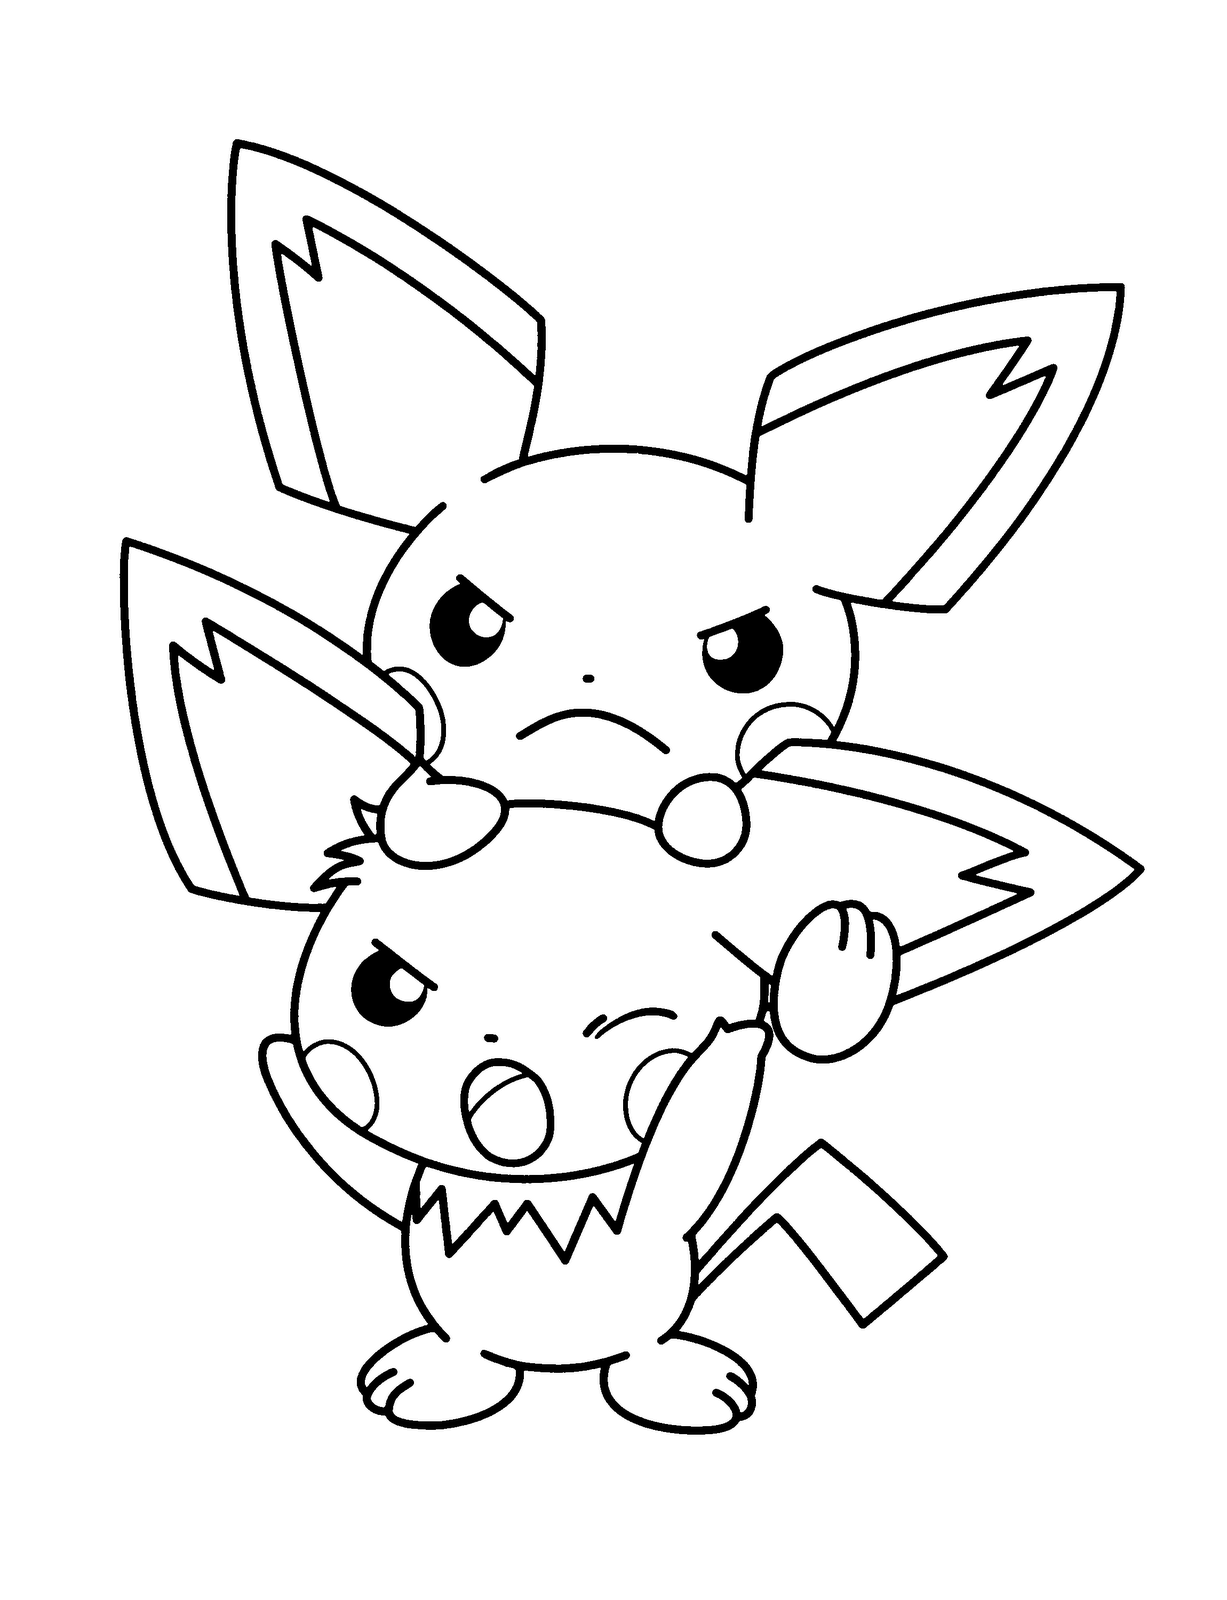 1227x1600 Colering Pokemon Coloring Pages Pikachu